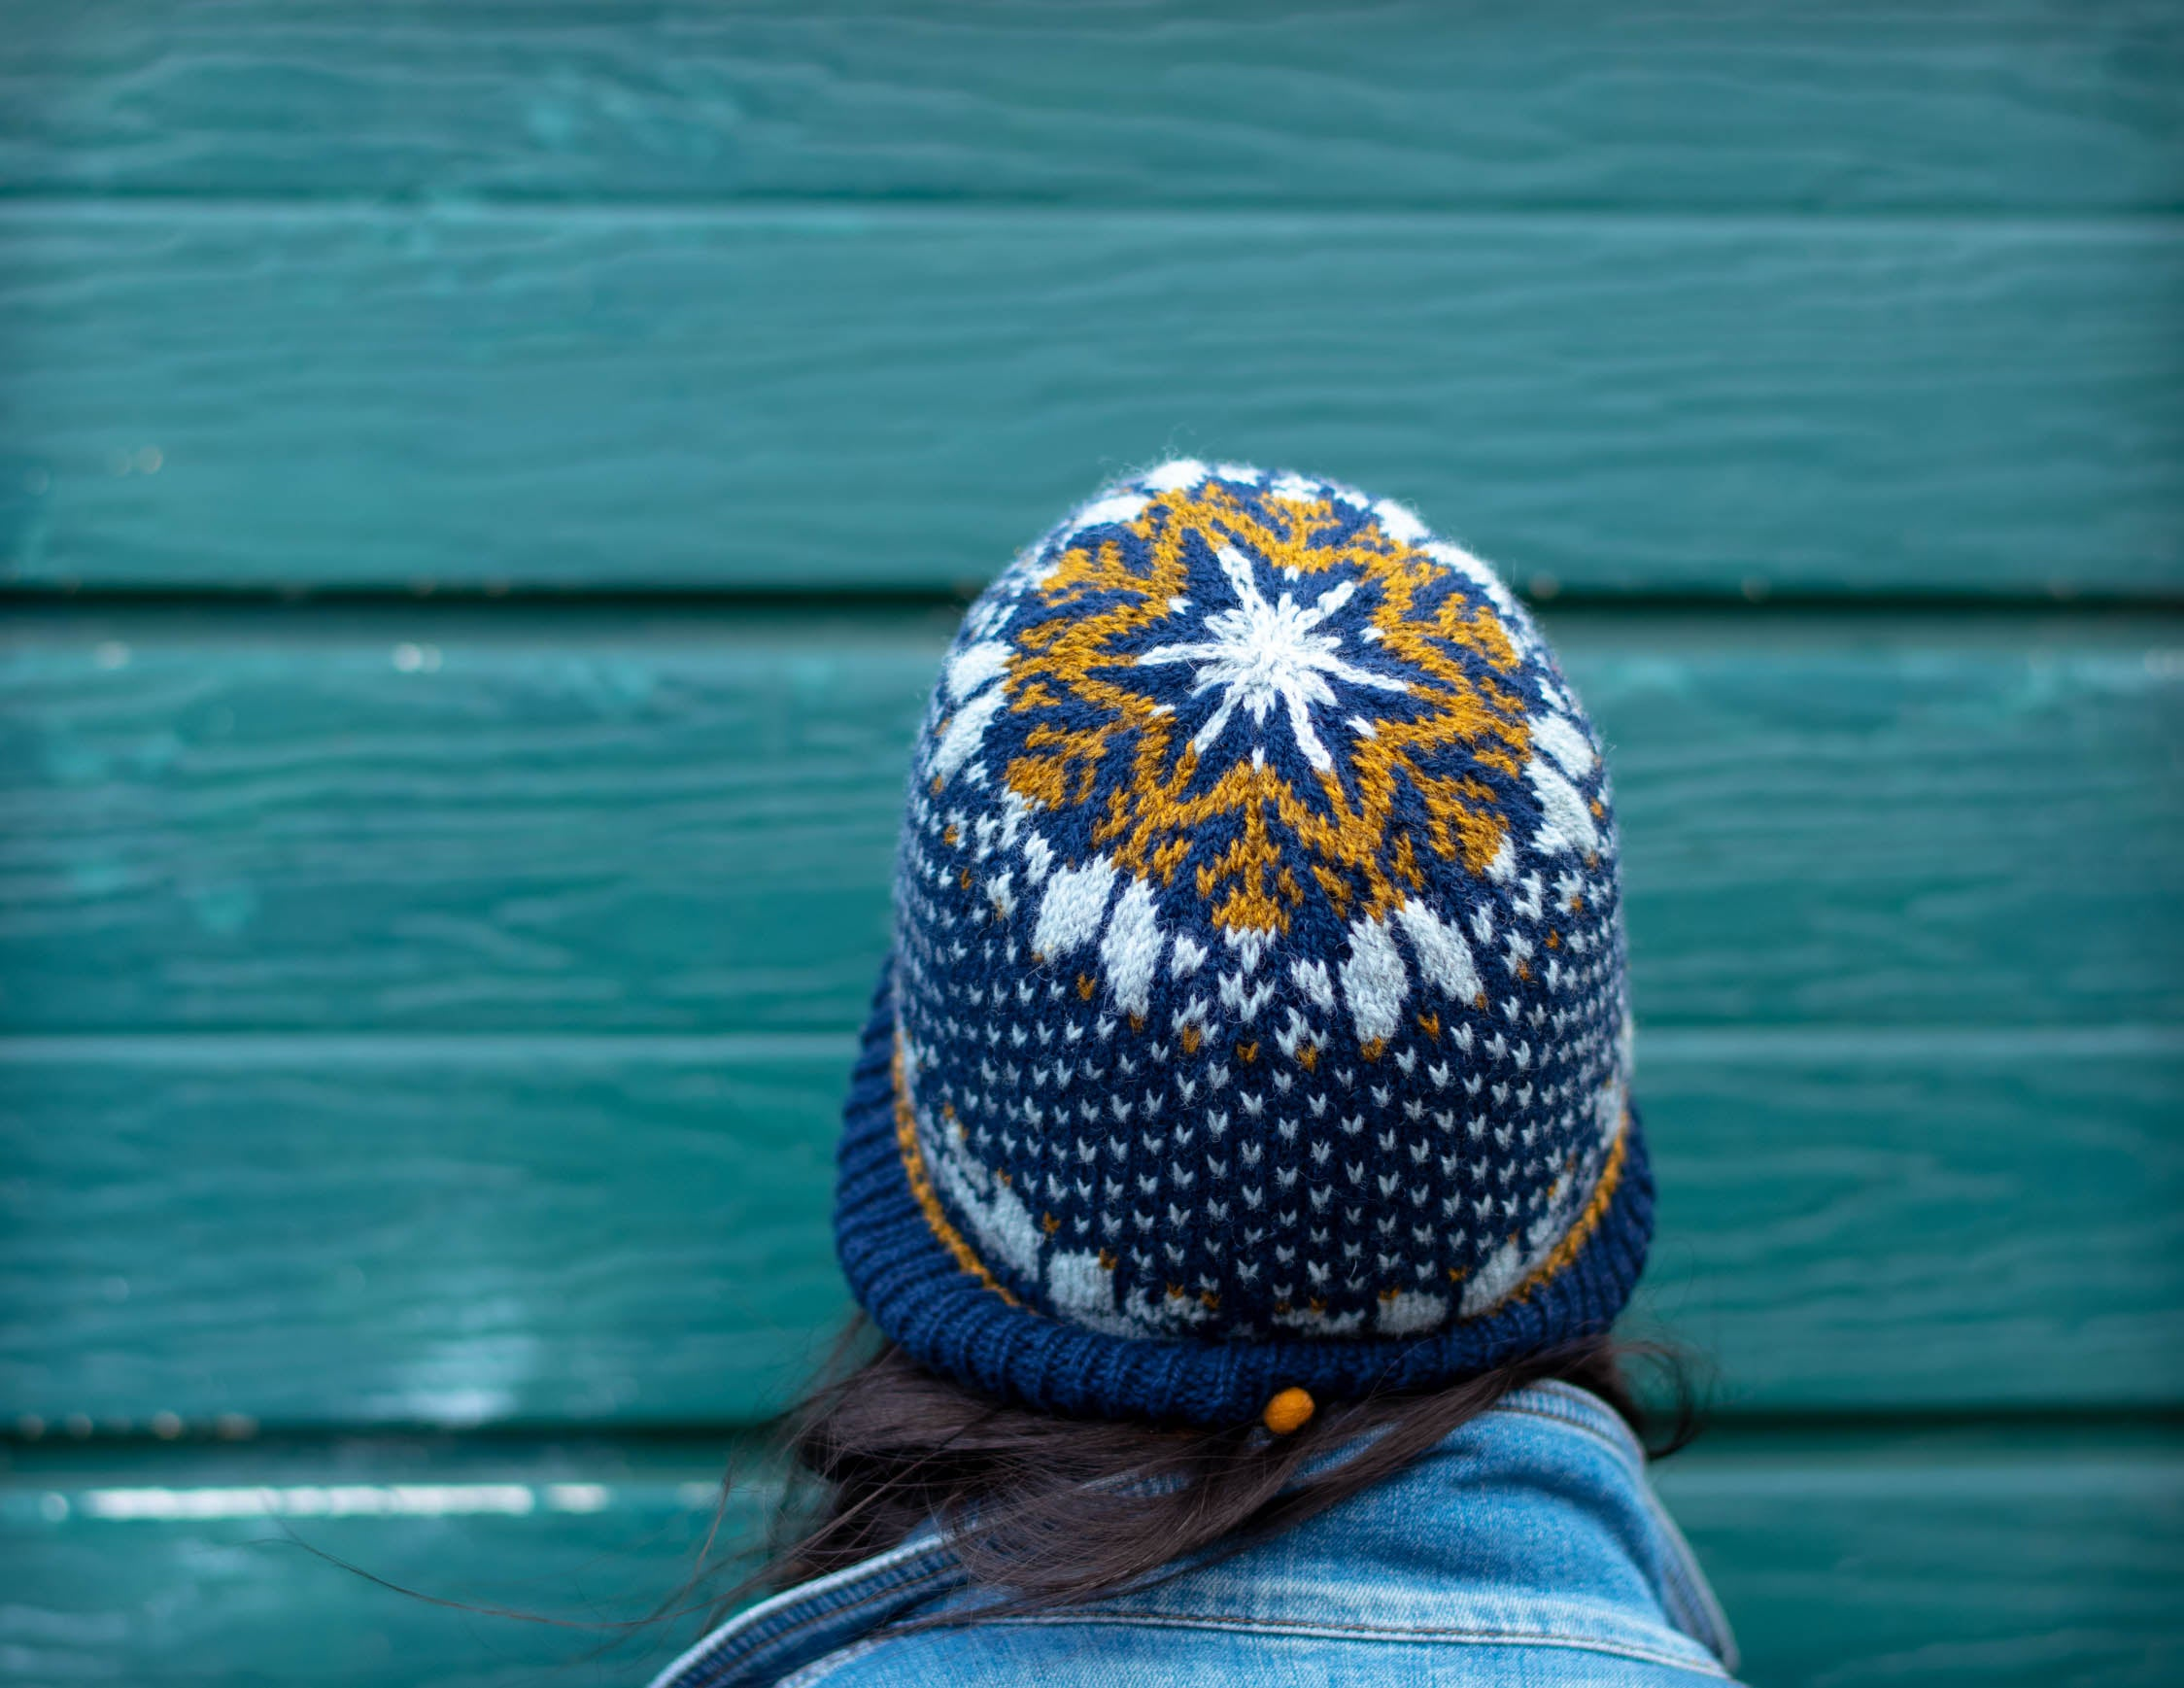 Image of a person wearing stranded colourwork hat with snowflake on the crown, facing away from the camera, in front of a green wall.